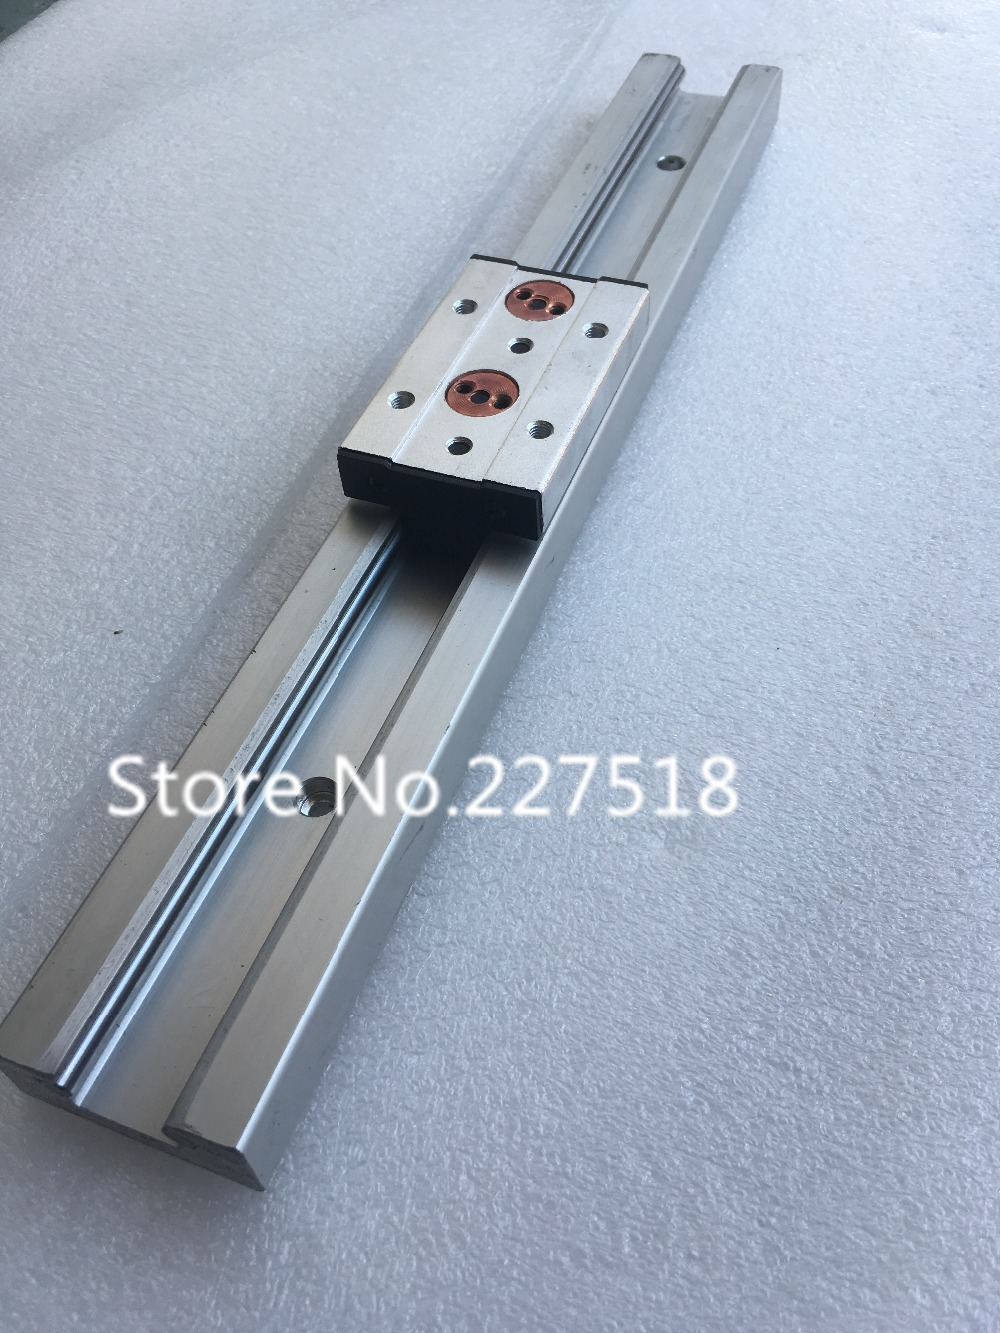 1pcs Double axis roller linear guide SGR20 L500mm +1pcs SGB20UU block multi axis core linear Motion slide rail auminum guide1pcs Double axis roller linear guide SGR20 L500mm +1pcs SGB20UU block multi axis core linear Motion slide rail auminum guide